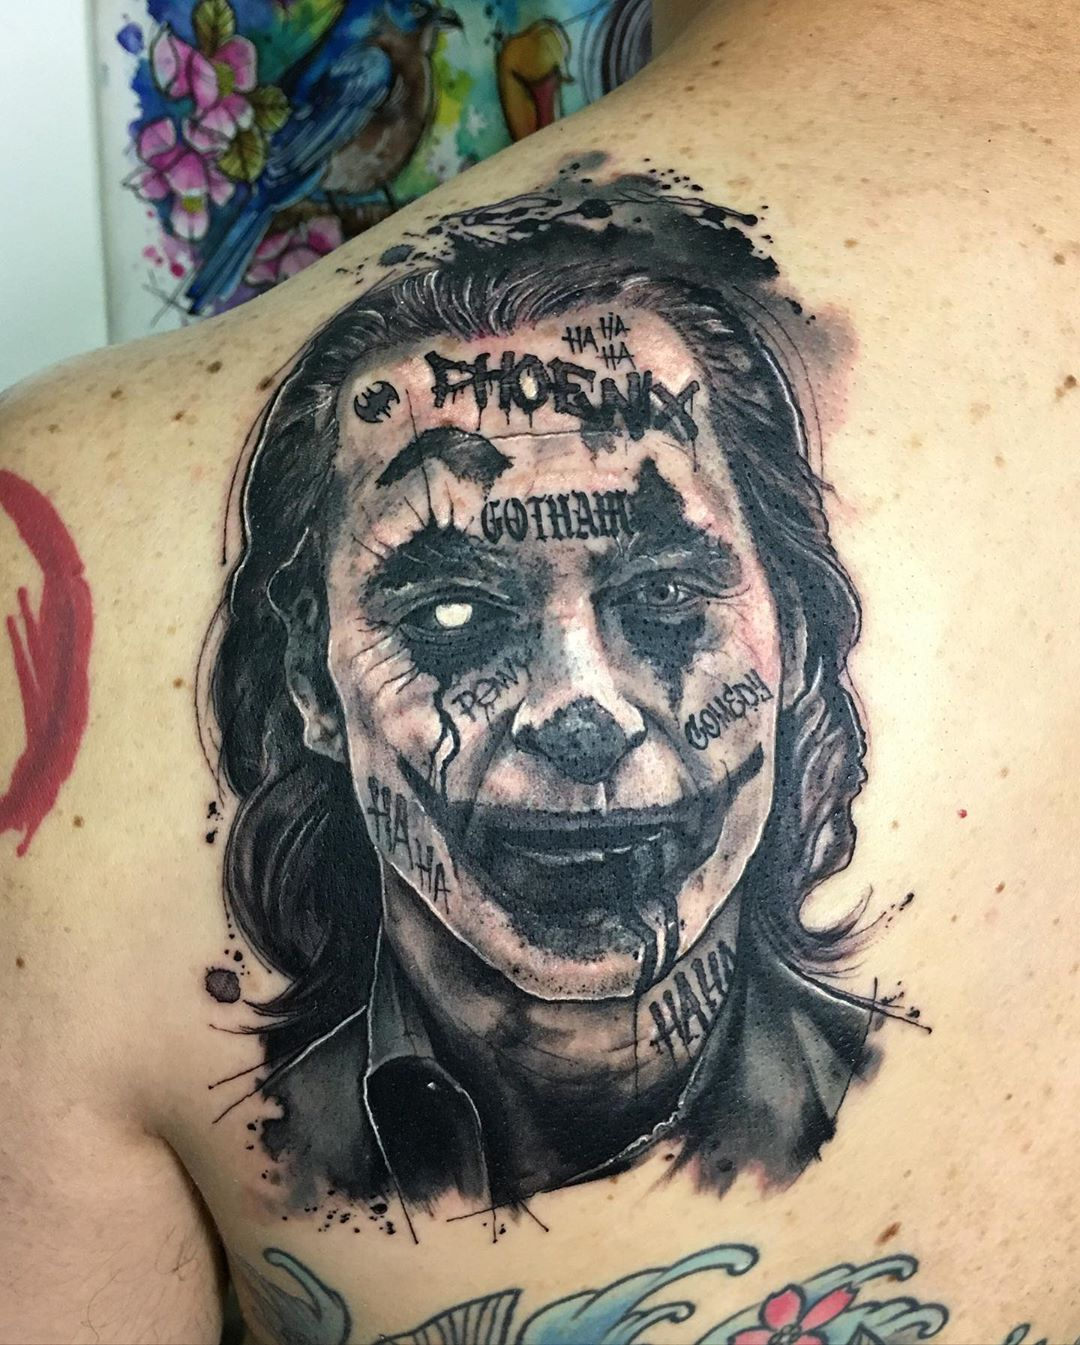 UPDATED: 40+ Audacious Joker Tattoo Designs (August 2020)